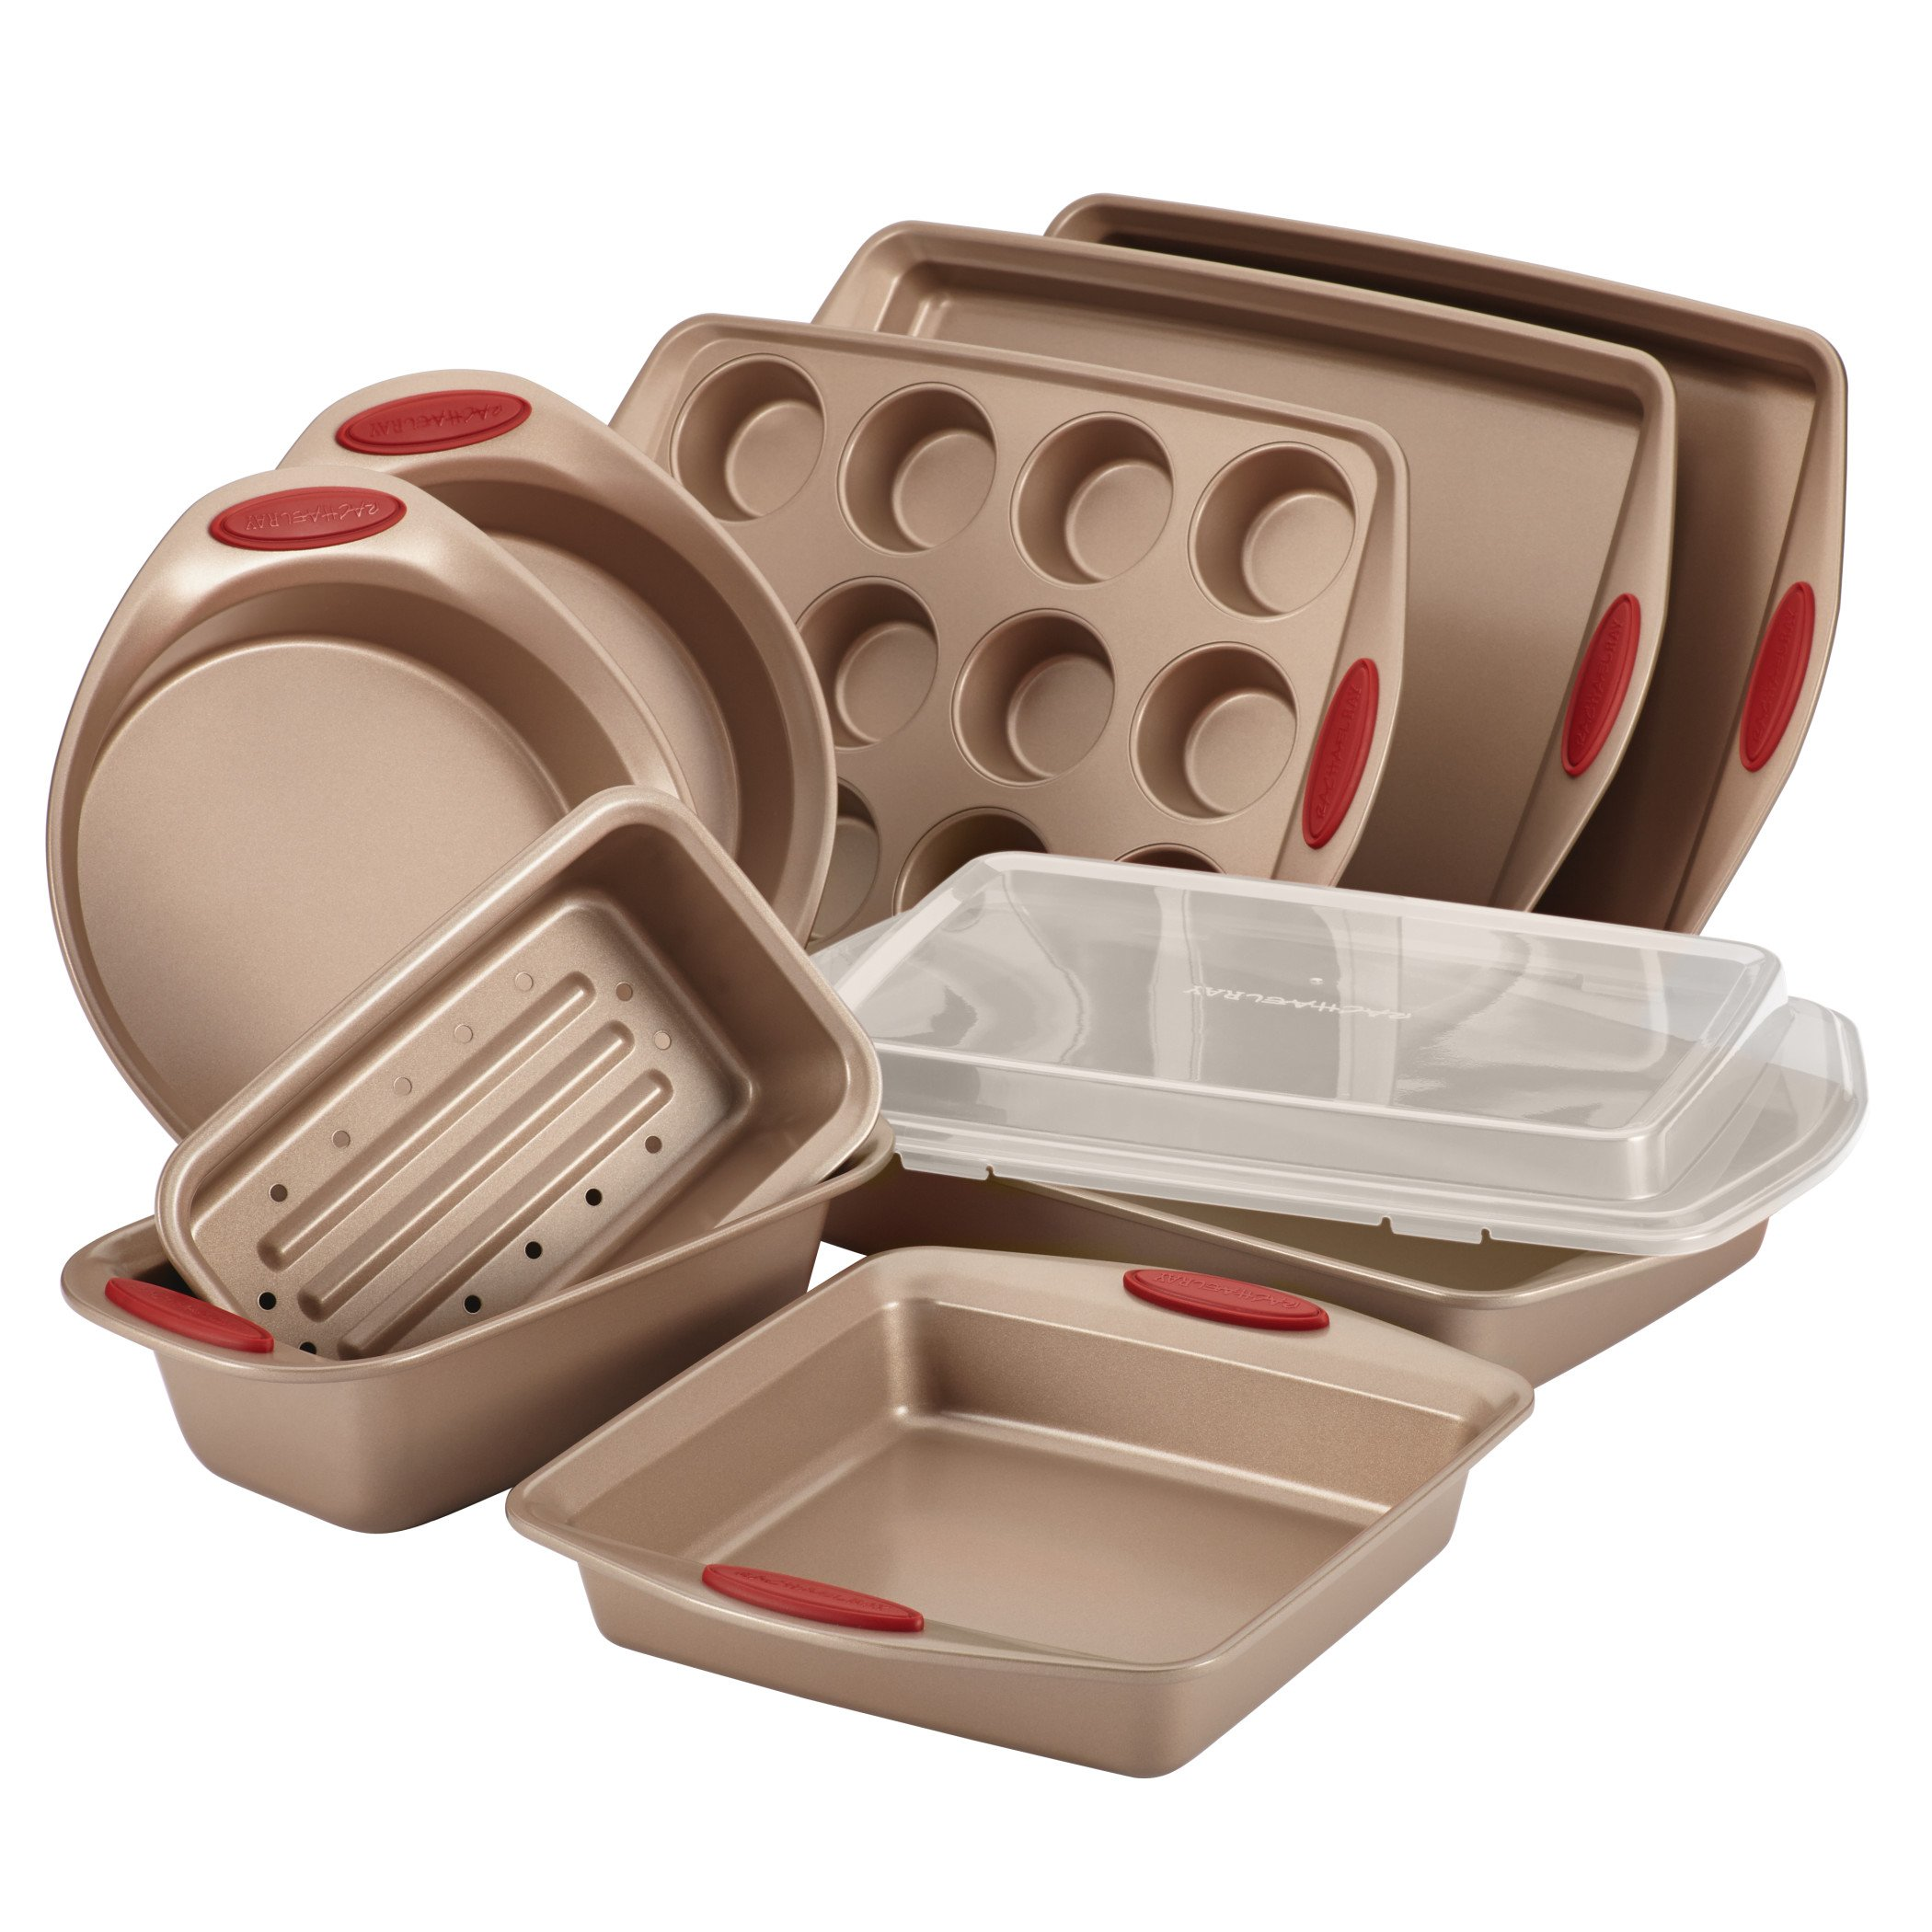 10 Piece Cucina Nonstick Bakeware Set, Brown with Red Handles-Bakeware Sets 3.24